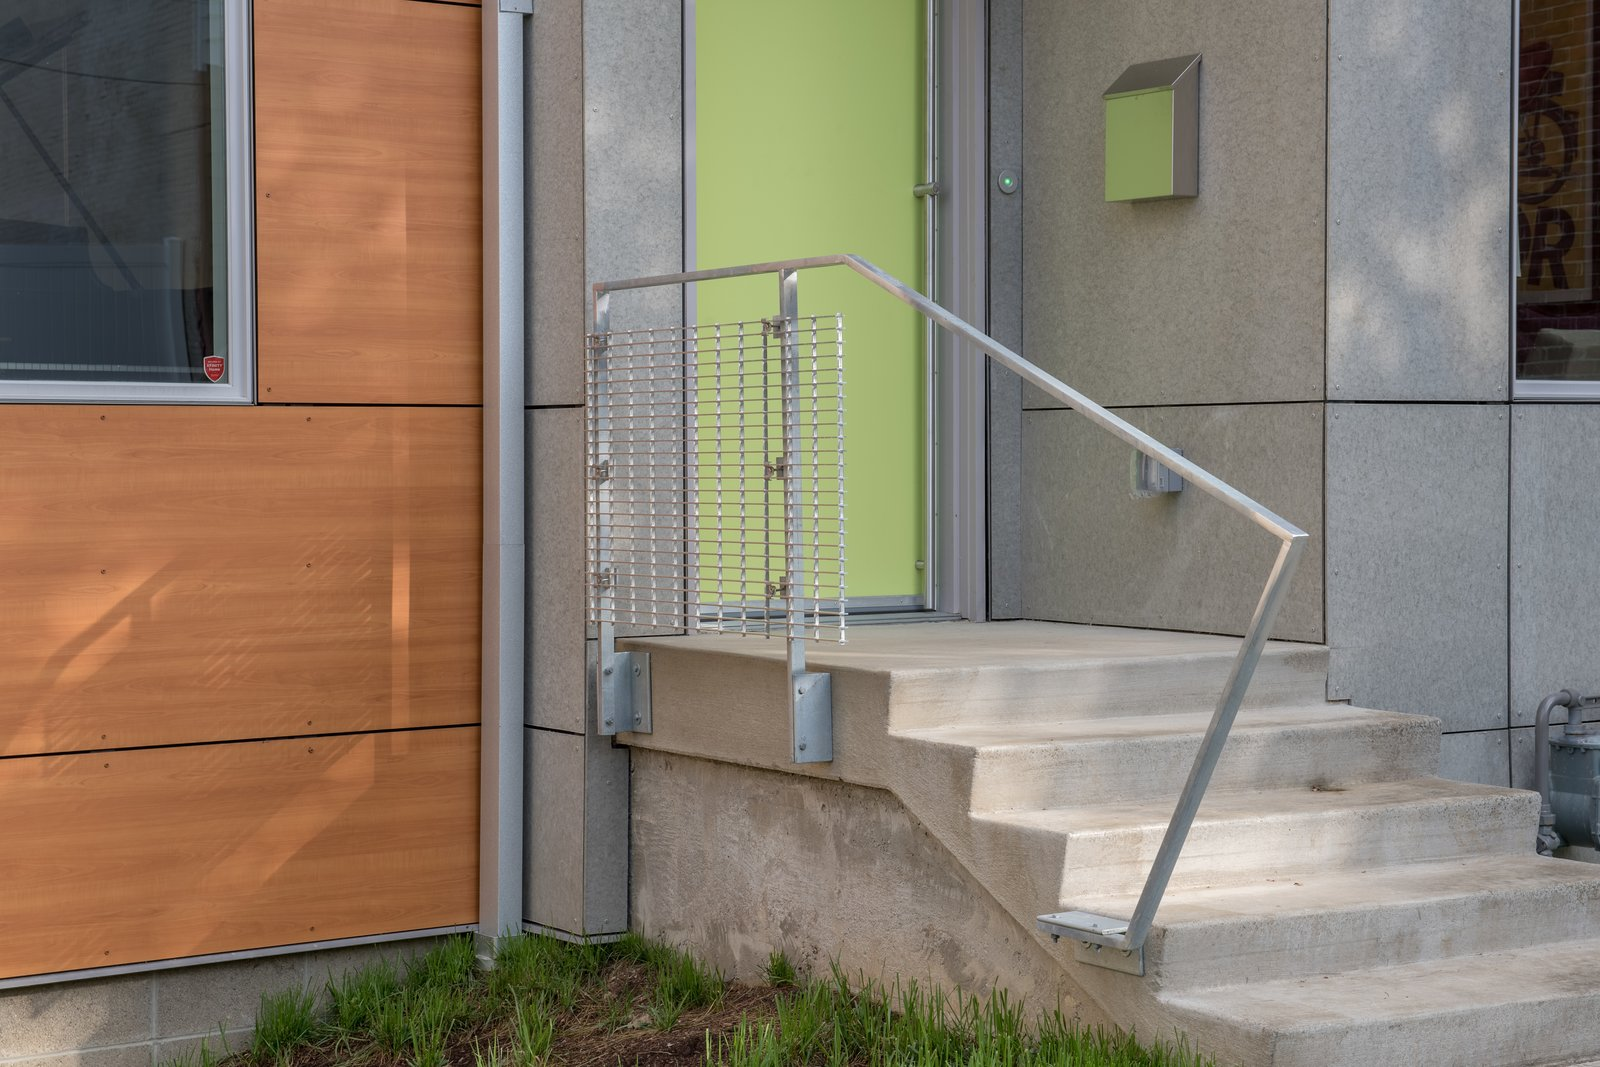 Exterior decks and railings also utilize galvanized steel support members and aluminum bar grating to provide a slightly industrial, yet refined appearance.  Ligonier Street Residence by mossArchitects